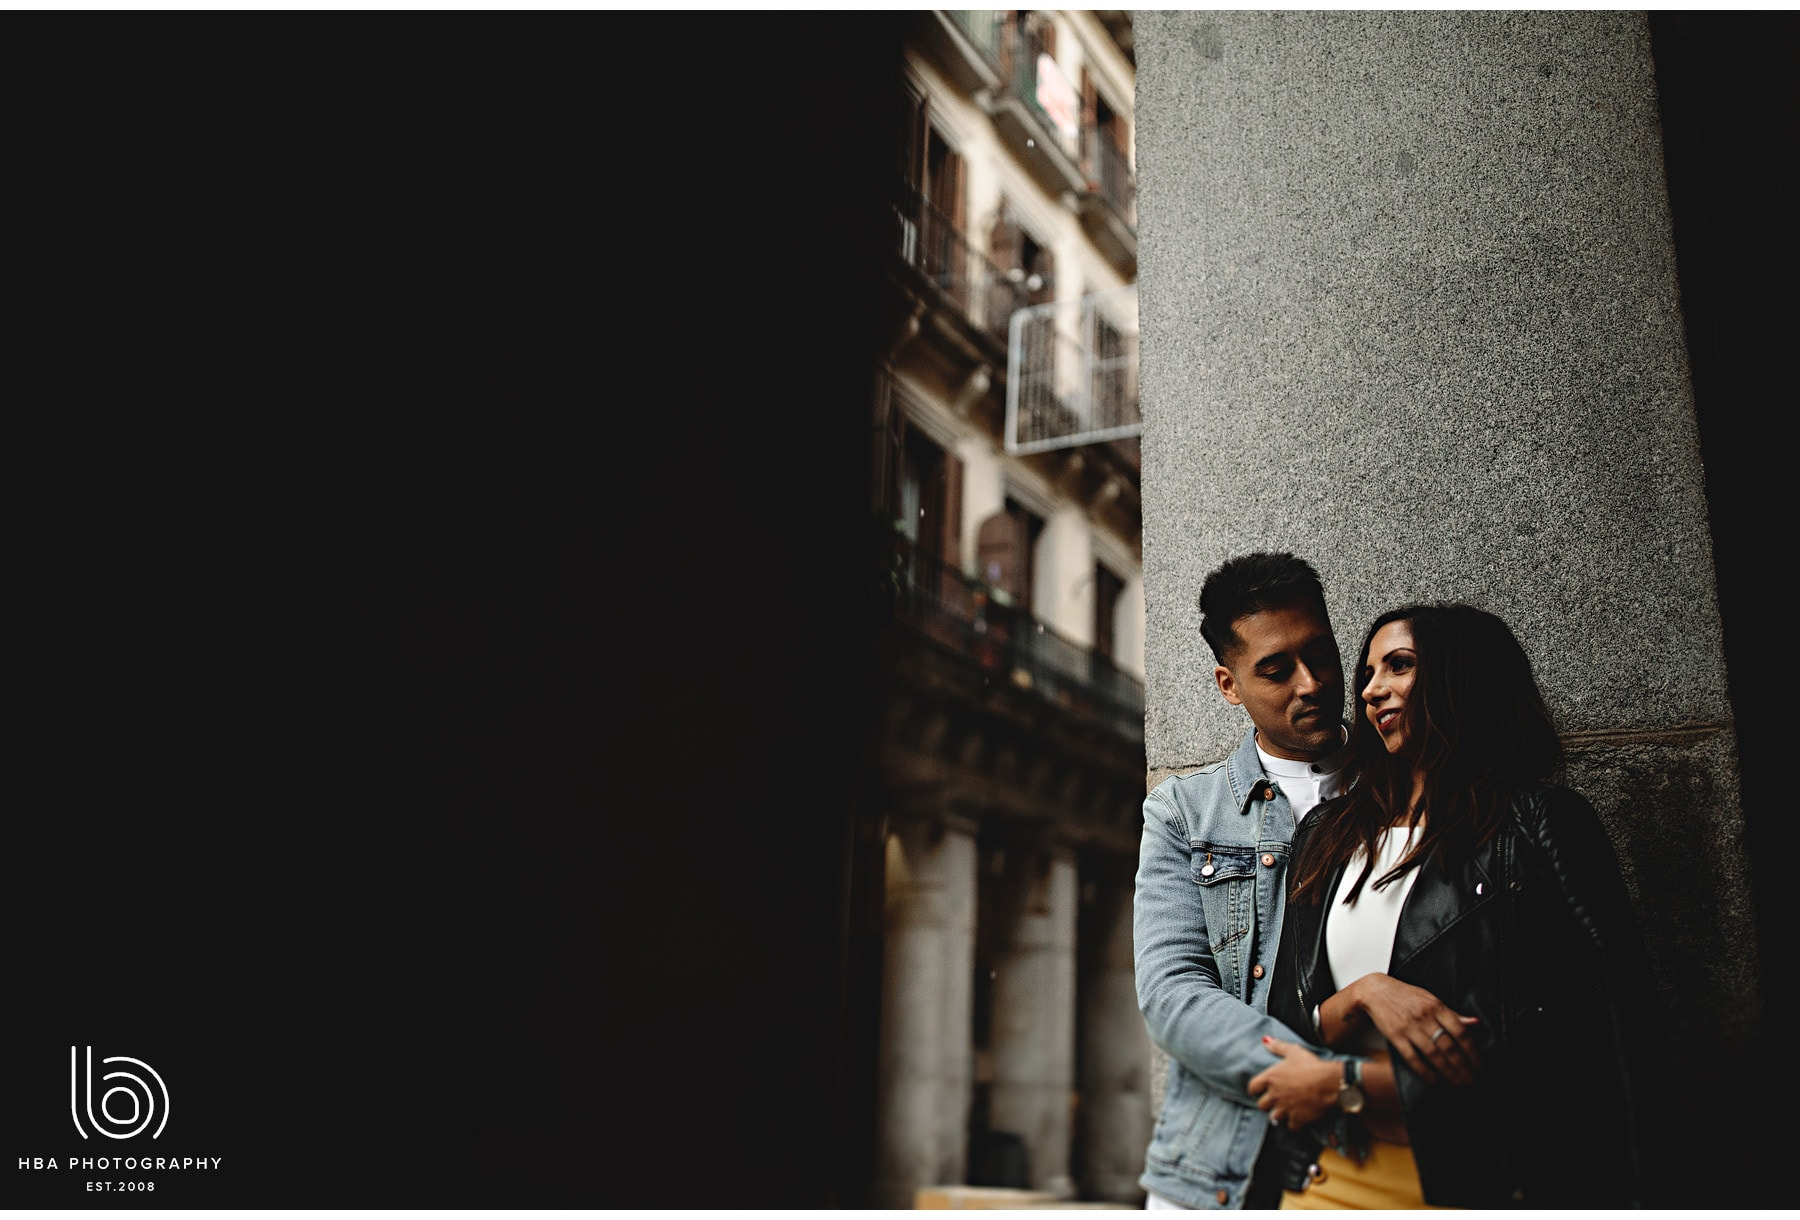 Madrid_wedding_photography_in_the_Capital_city_of_spain_